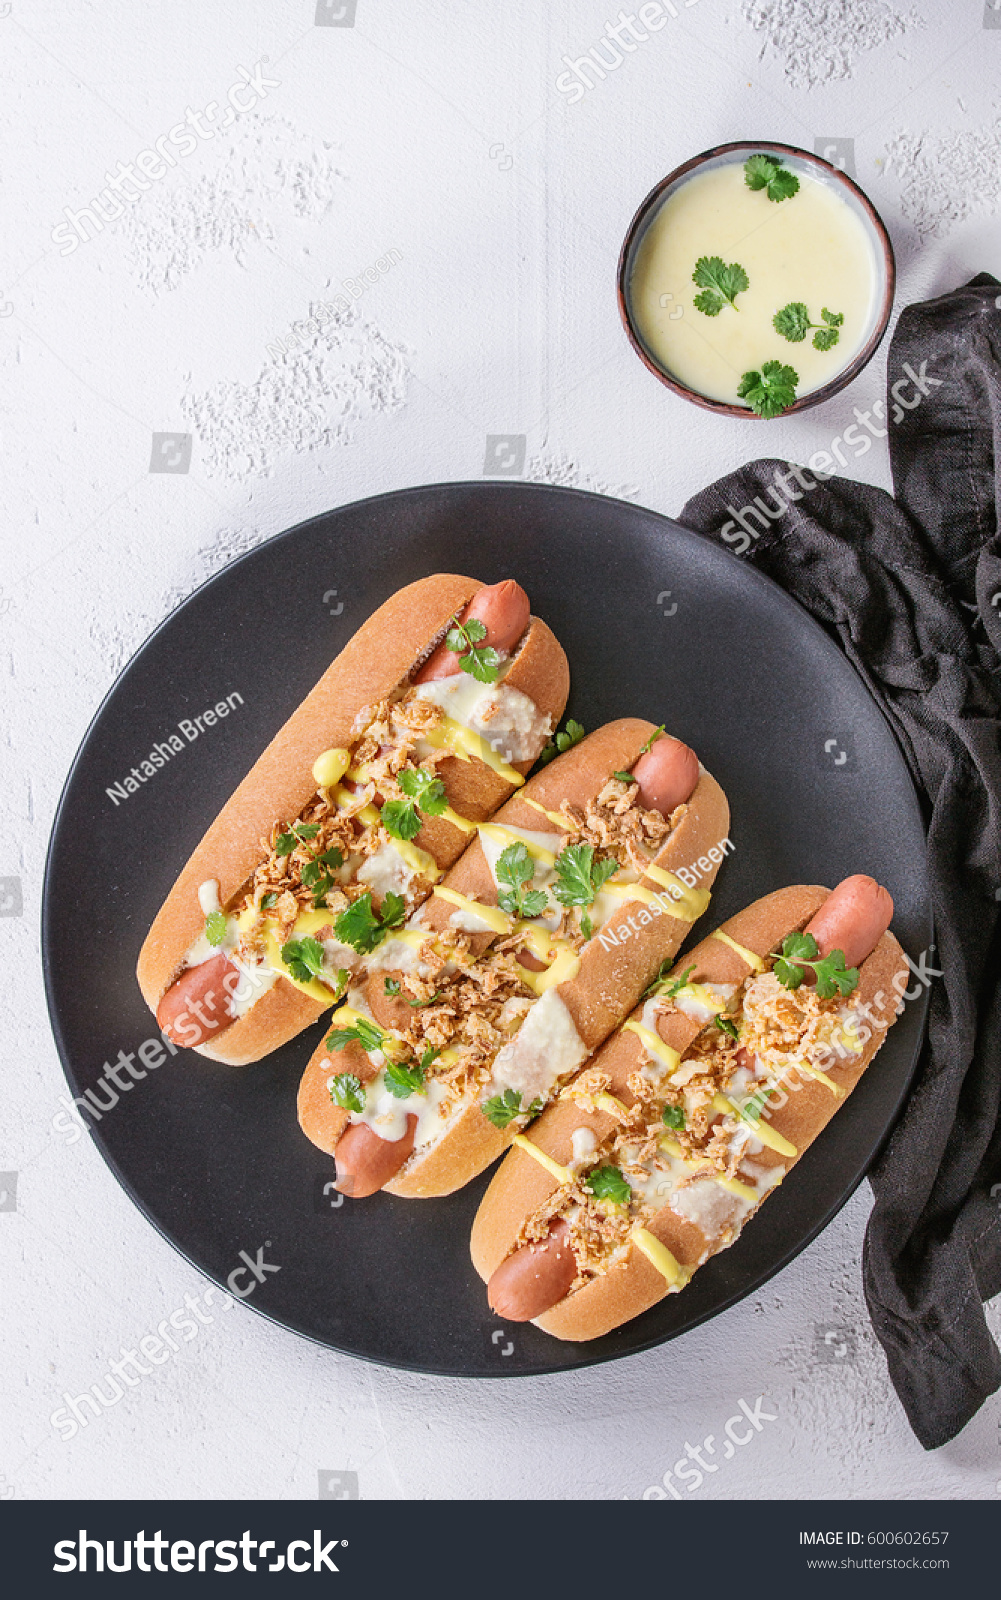 hot dogs sausage fried onion coriander stock photo 600602657 shutterstock. Black Bedroom Furniture Sets. Home Design Ideas